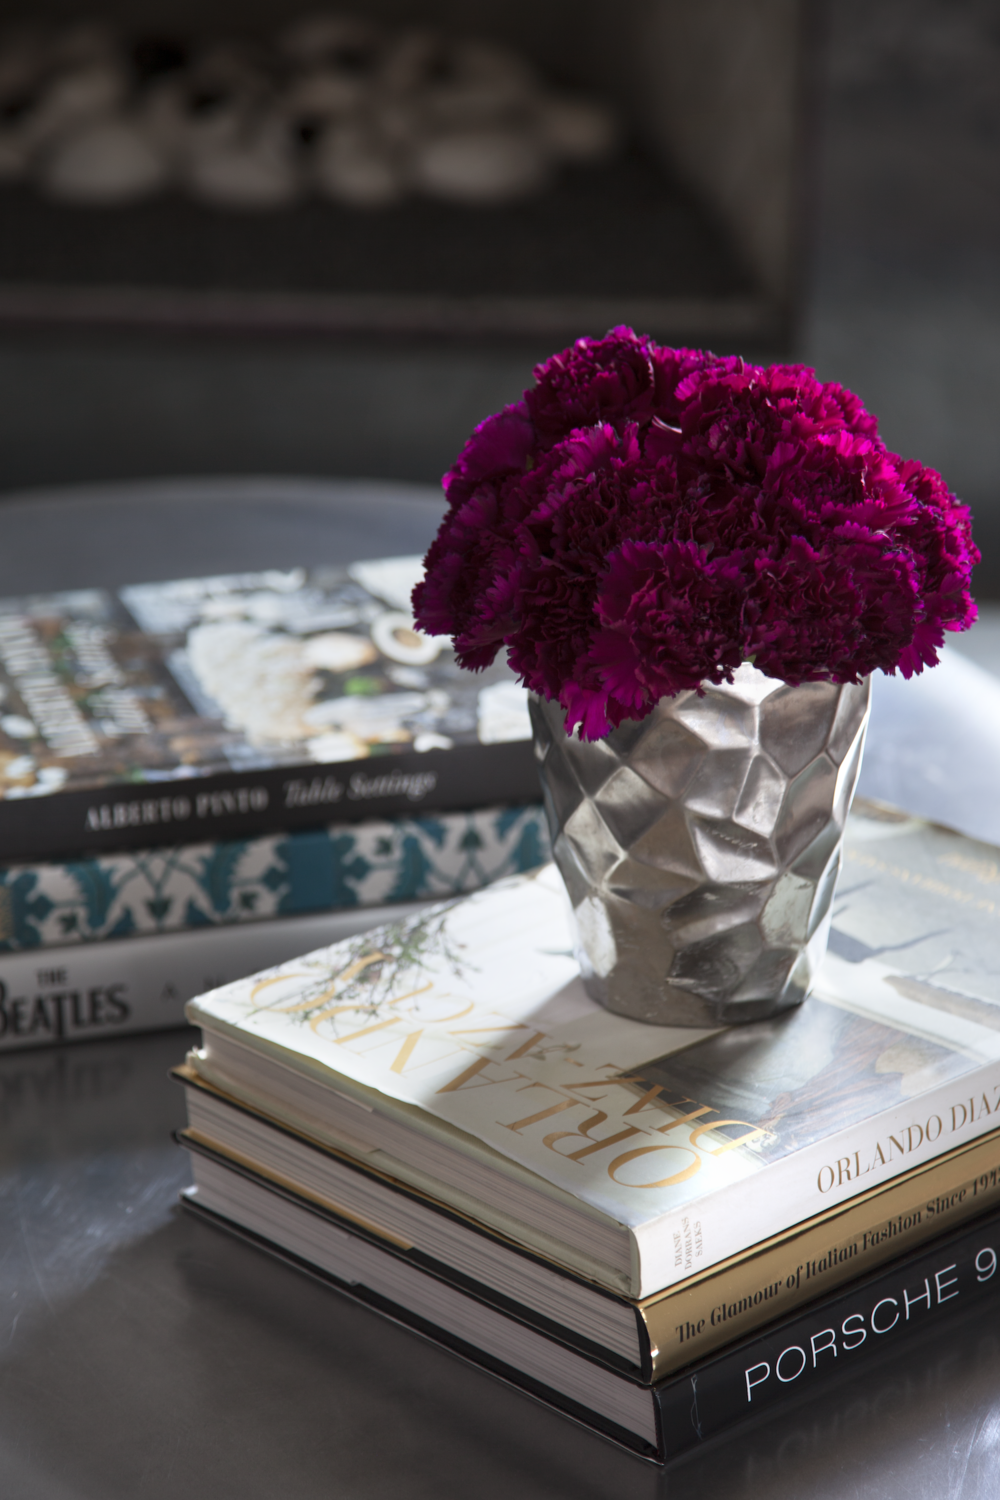 Purple Flowers and Books Tarrytown Austin Robin Colton Interior Design.png